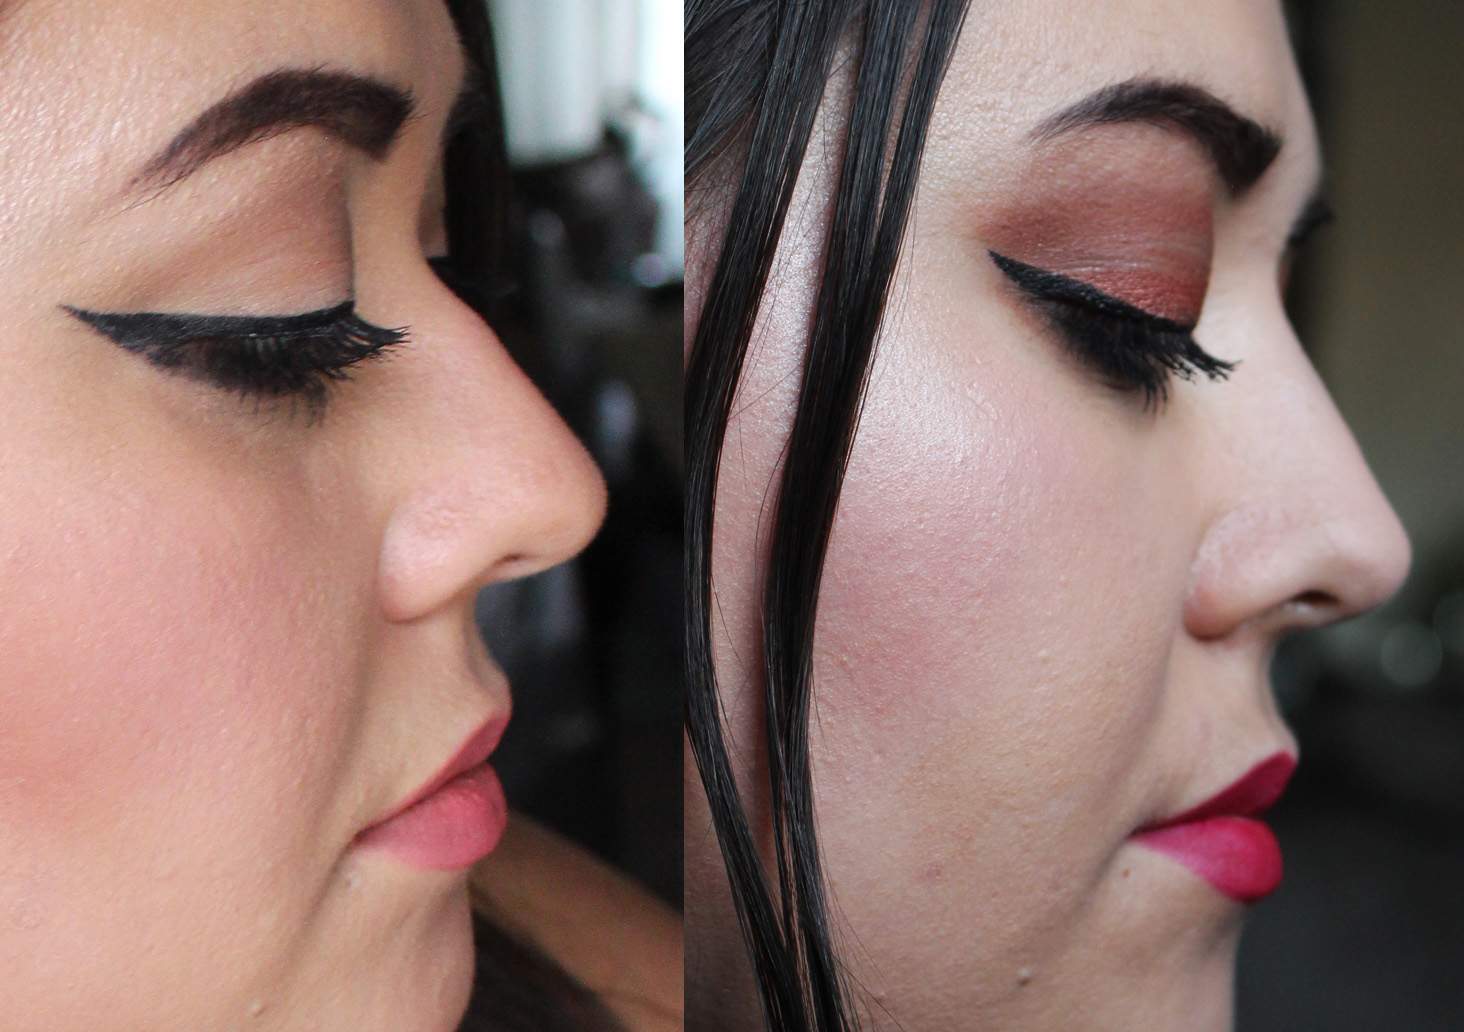 Tempted by a Nose Job This Is What You Need to Know